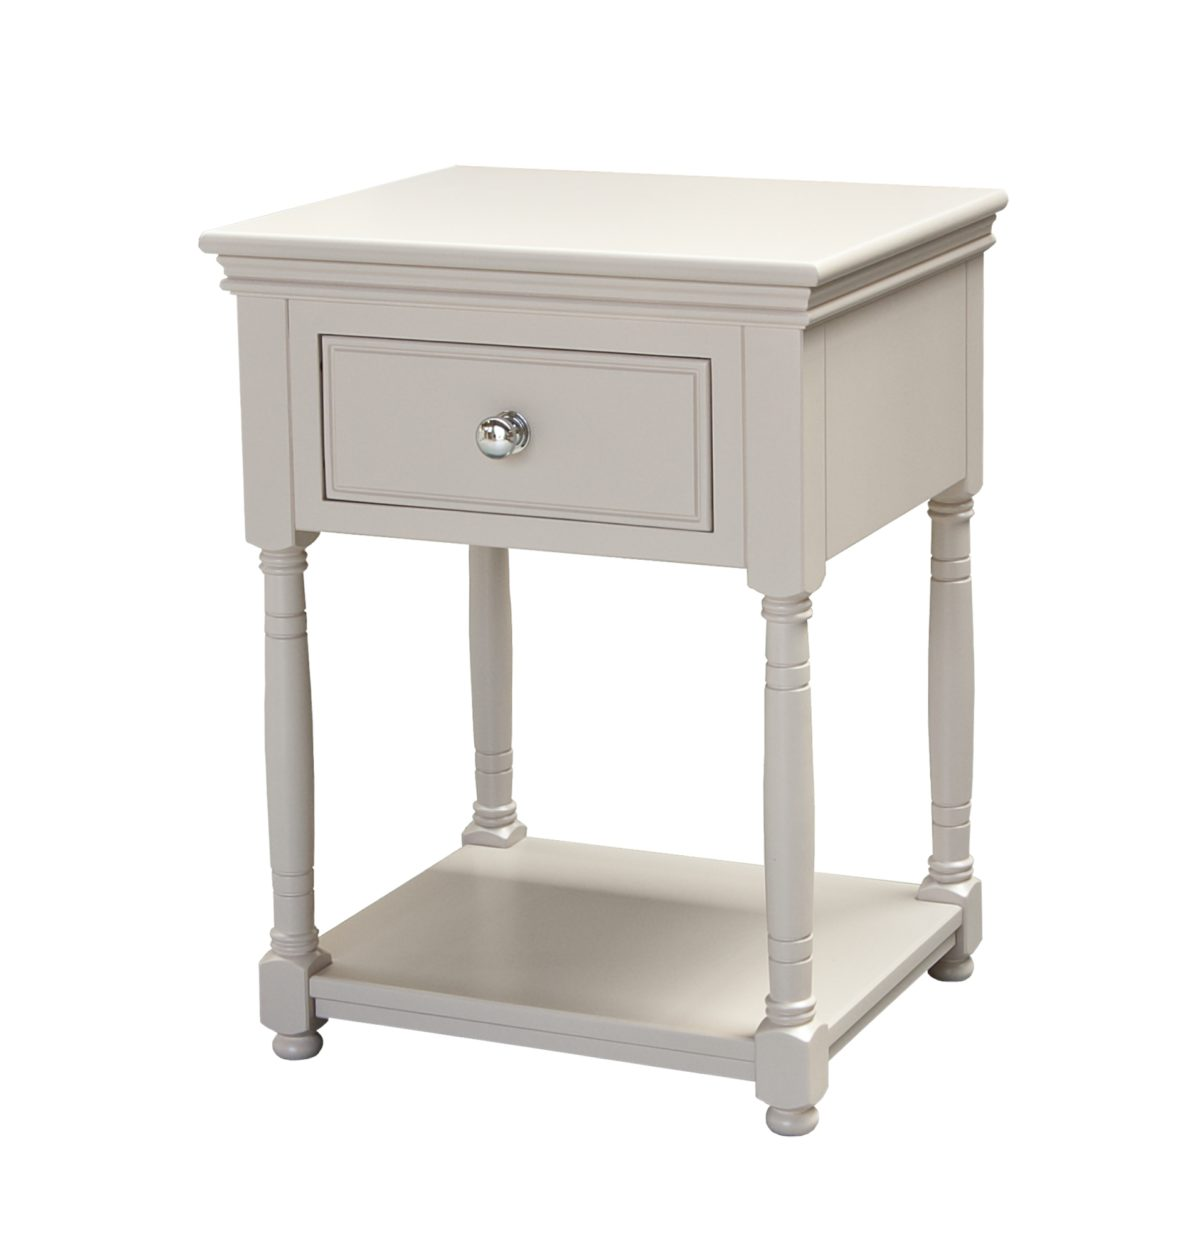 1 Drawer Bedside With Legs